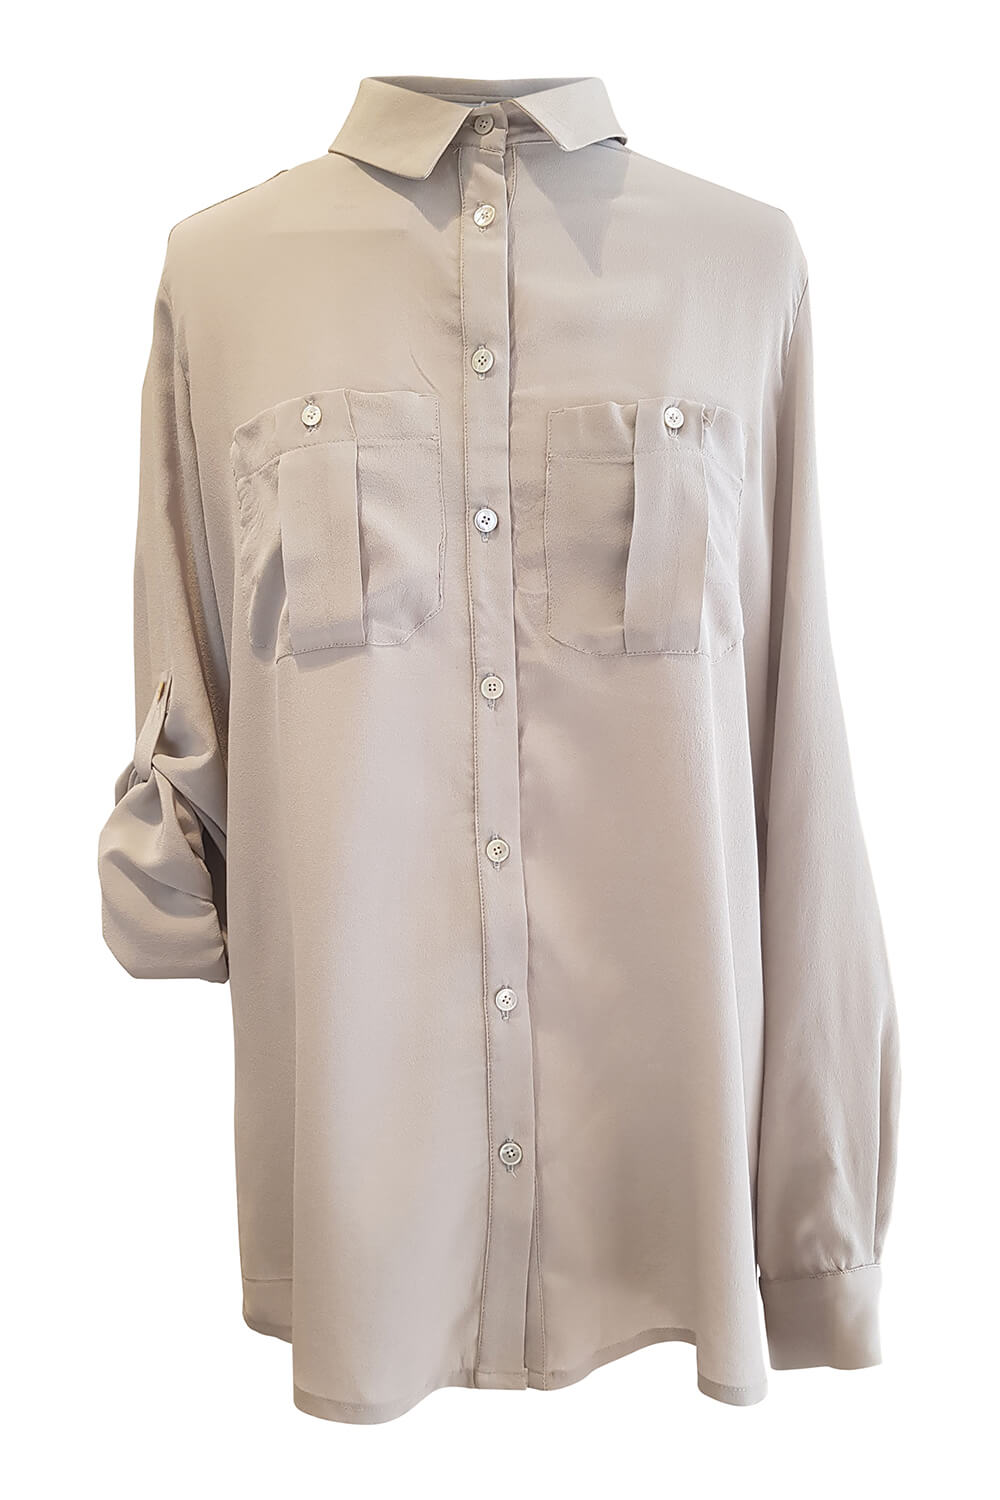 grey silk blouse KATRIN with patch pockets